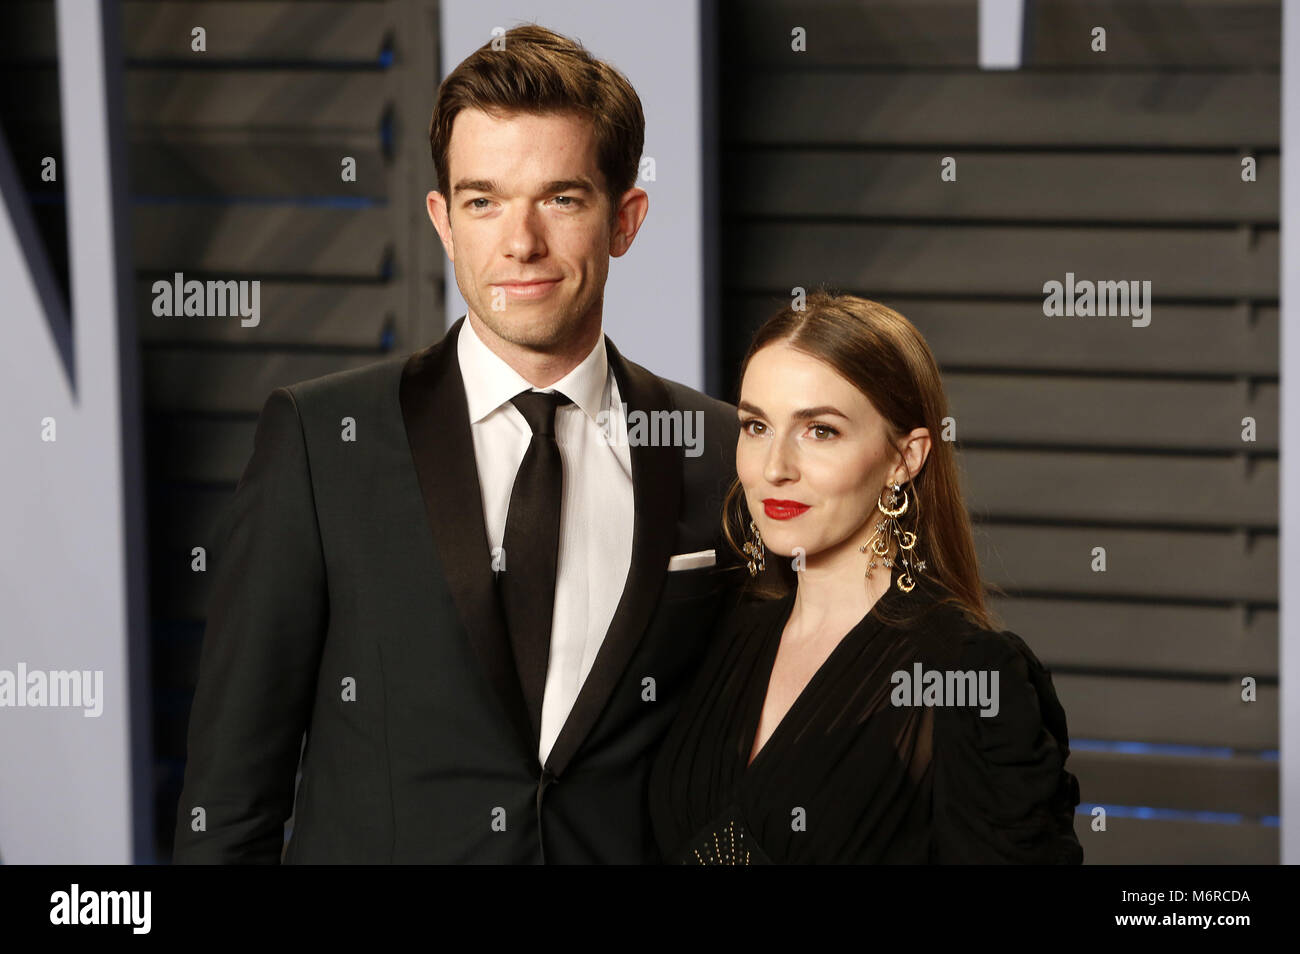 Elegant John Mulaney And Annamarie Tendler Attending The 2018 Vanity Fair Stock  Photo: 176306294   Alamy